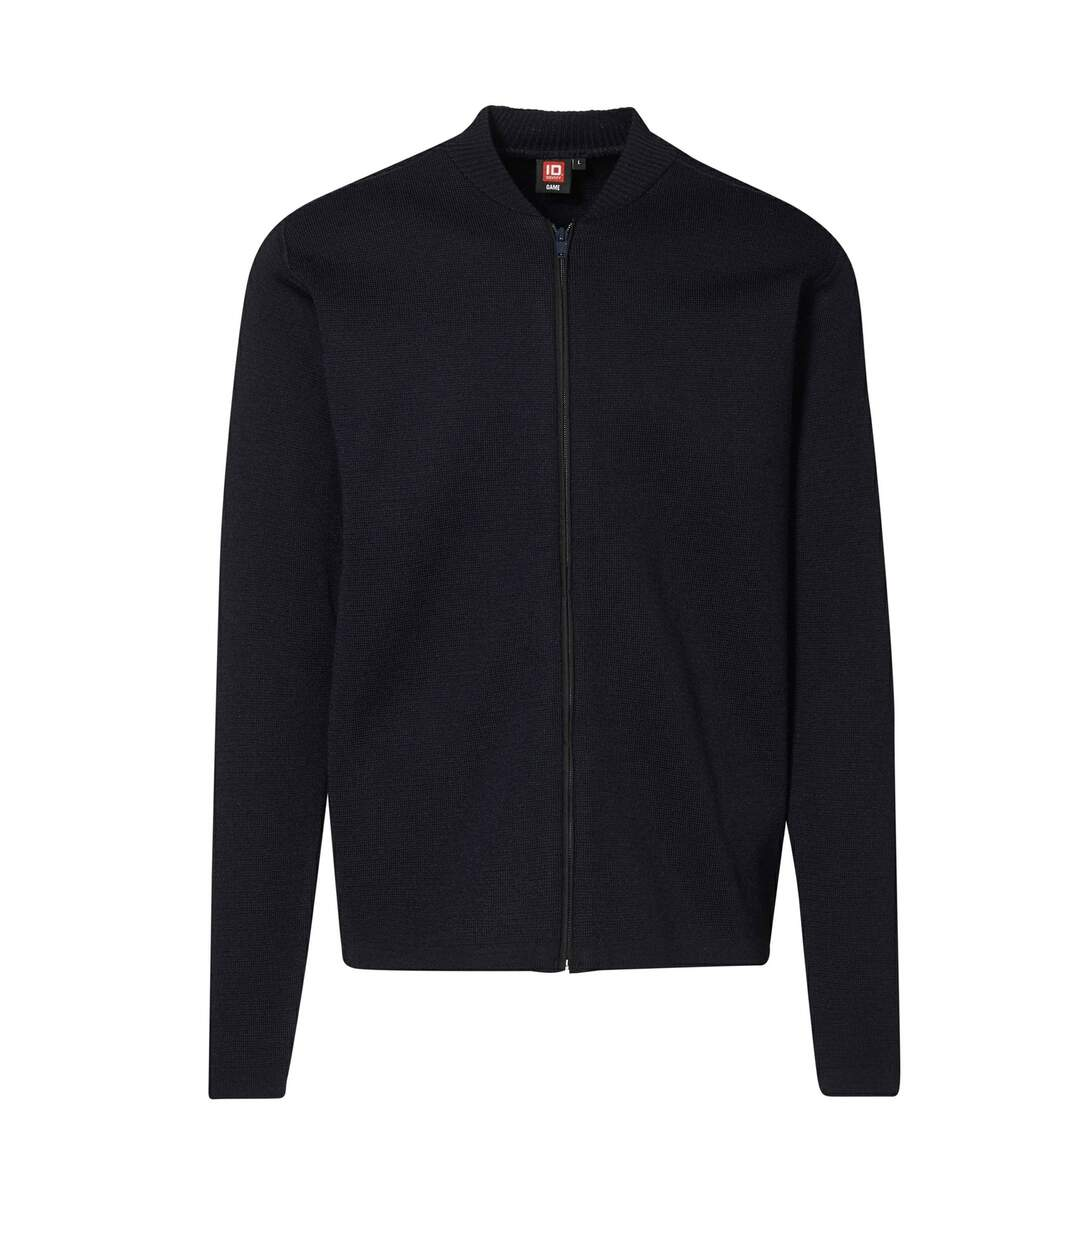 ID Mens Fitted Full Zip Knitted Cardigan (Navy) - UTID396